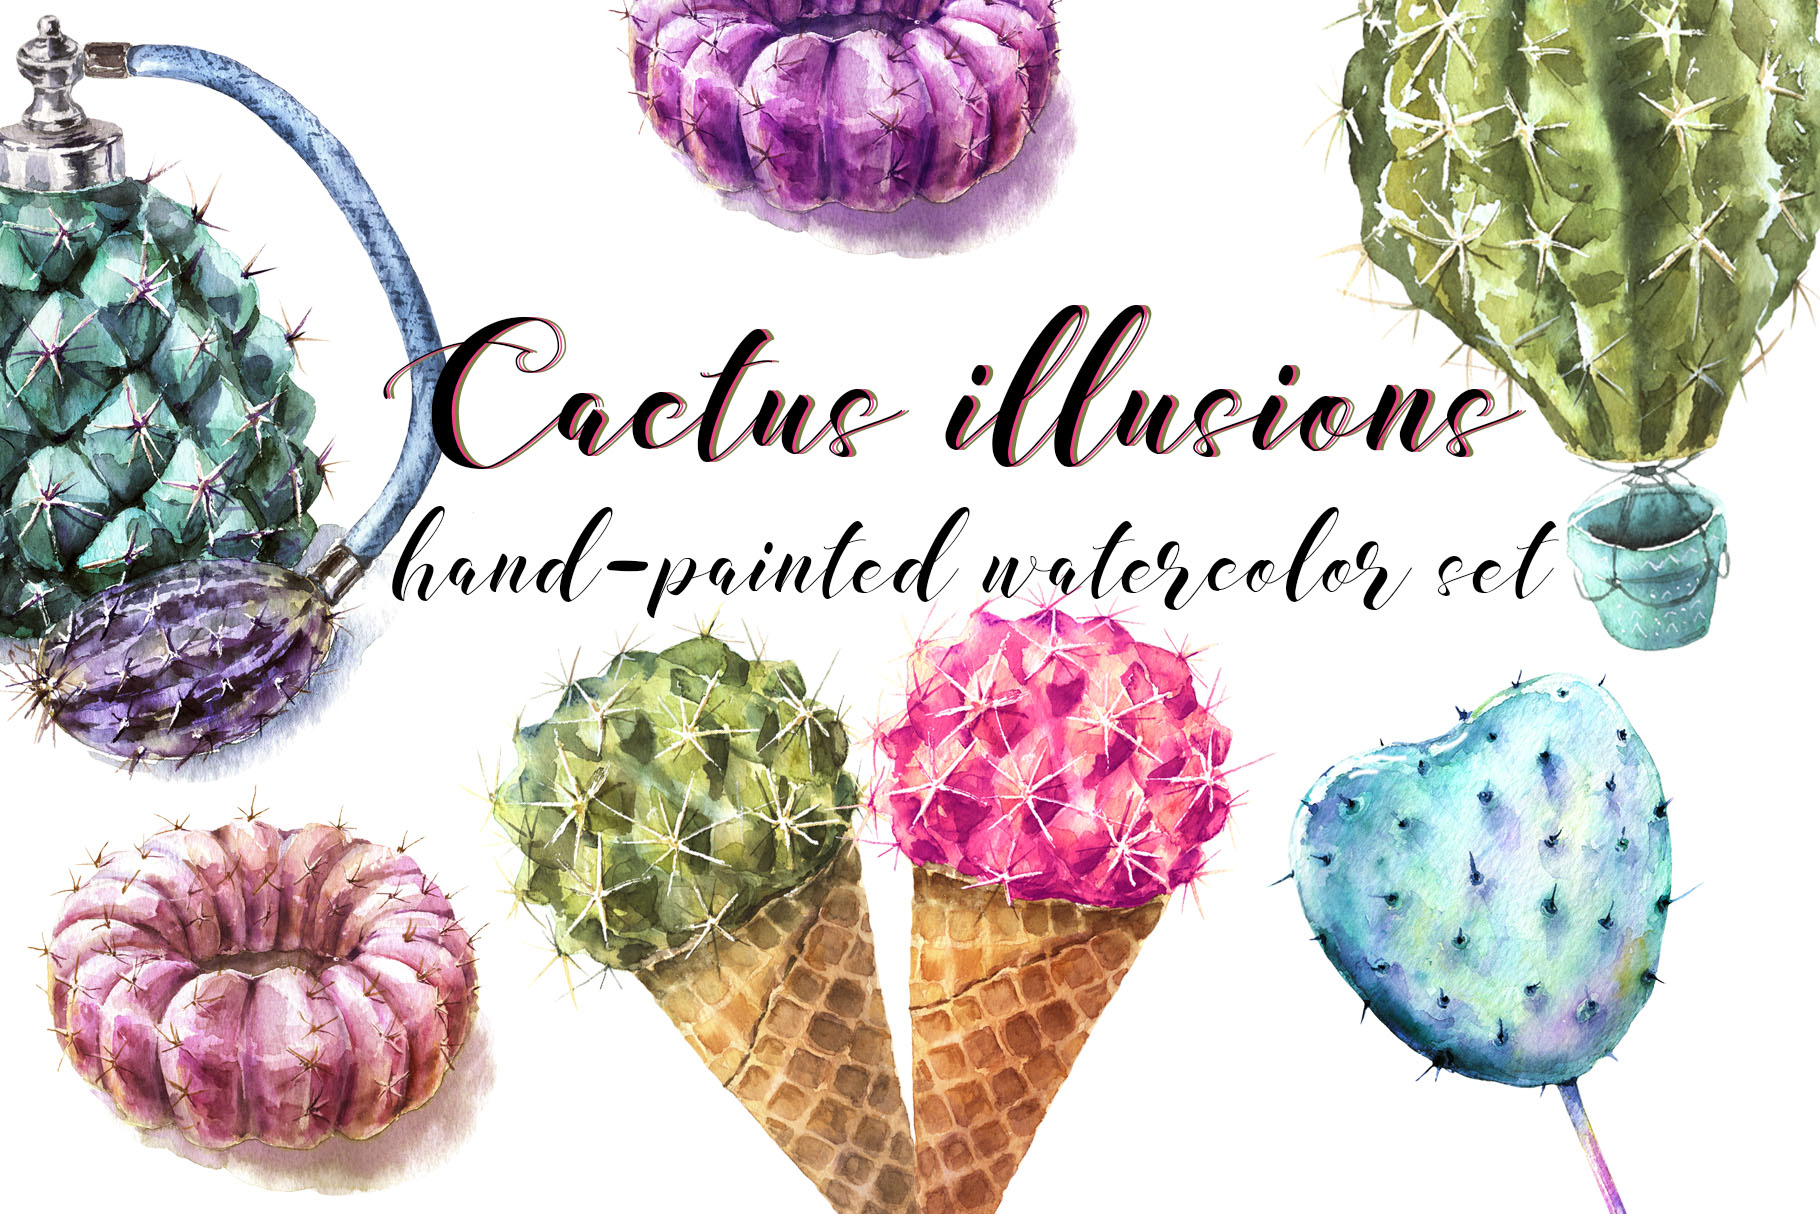 Download Free Cactus Illusions Watercolor Set Graphic By Cat In Colour for Cricut Explore, Silhouette and other cutting machines.